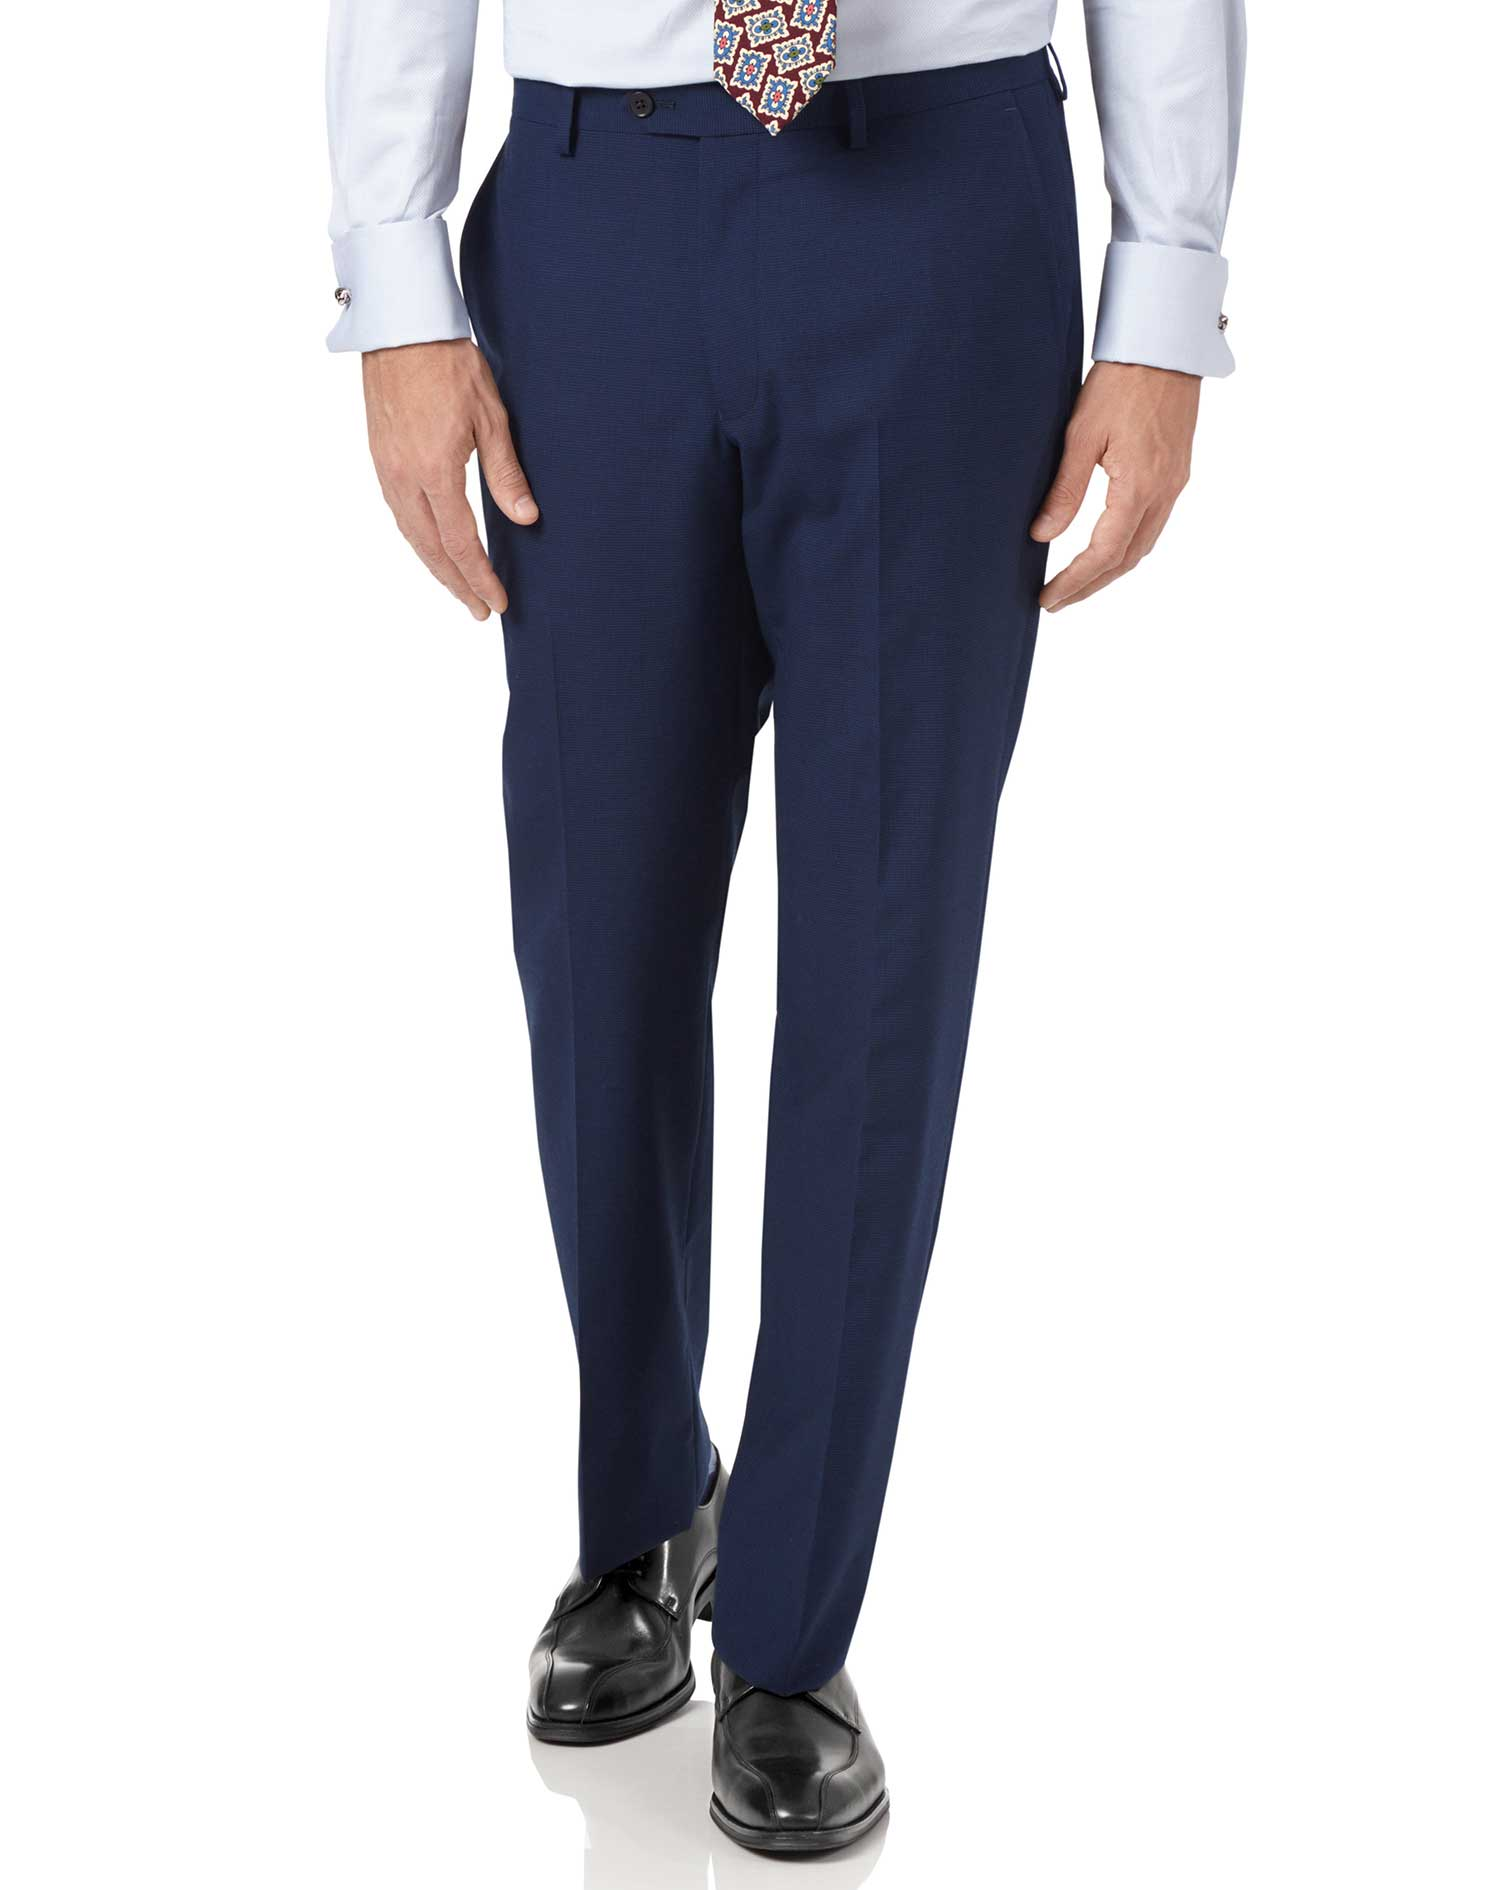 Indigo Blue Slim Fit Panama Puppytooth Business Suit Trouser Size W34 L38 by Charles Tyrwhitt